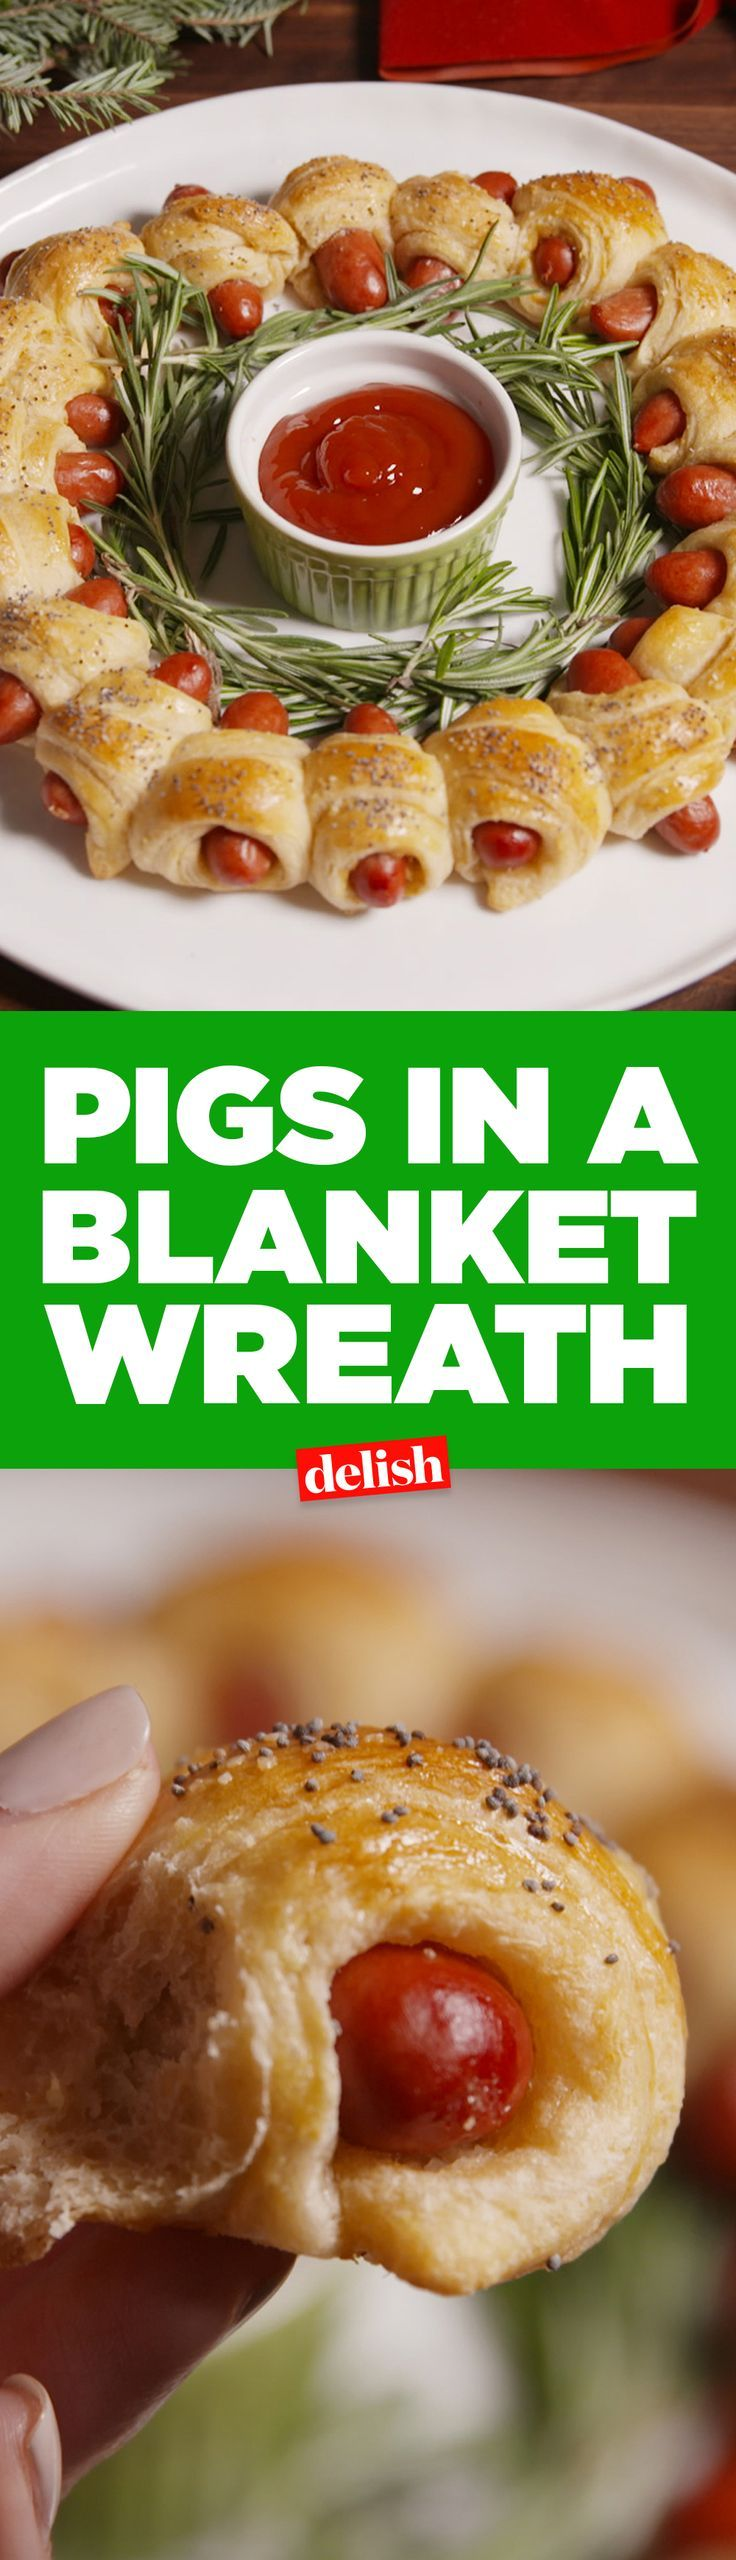 Good Pinterest Christmas Party Food Ideas Part - 6: Pigs In A Blanket Wreath